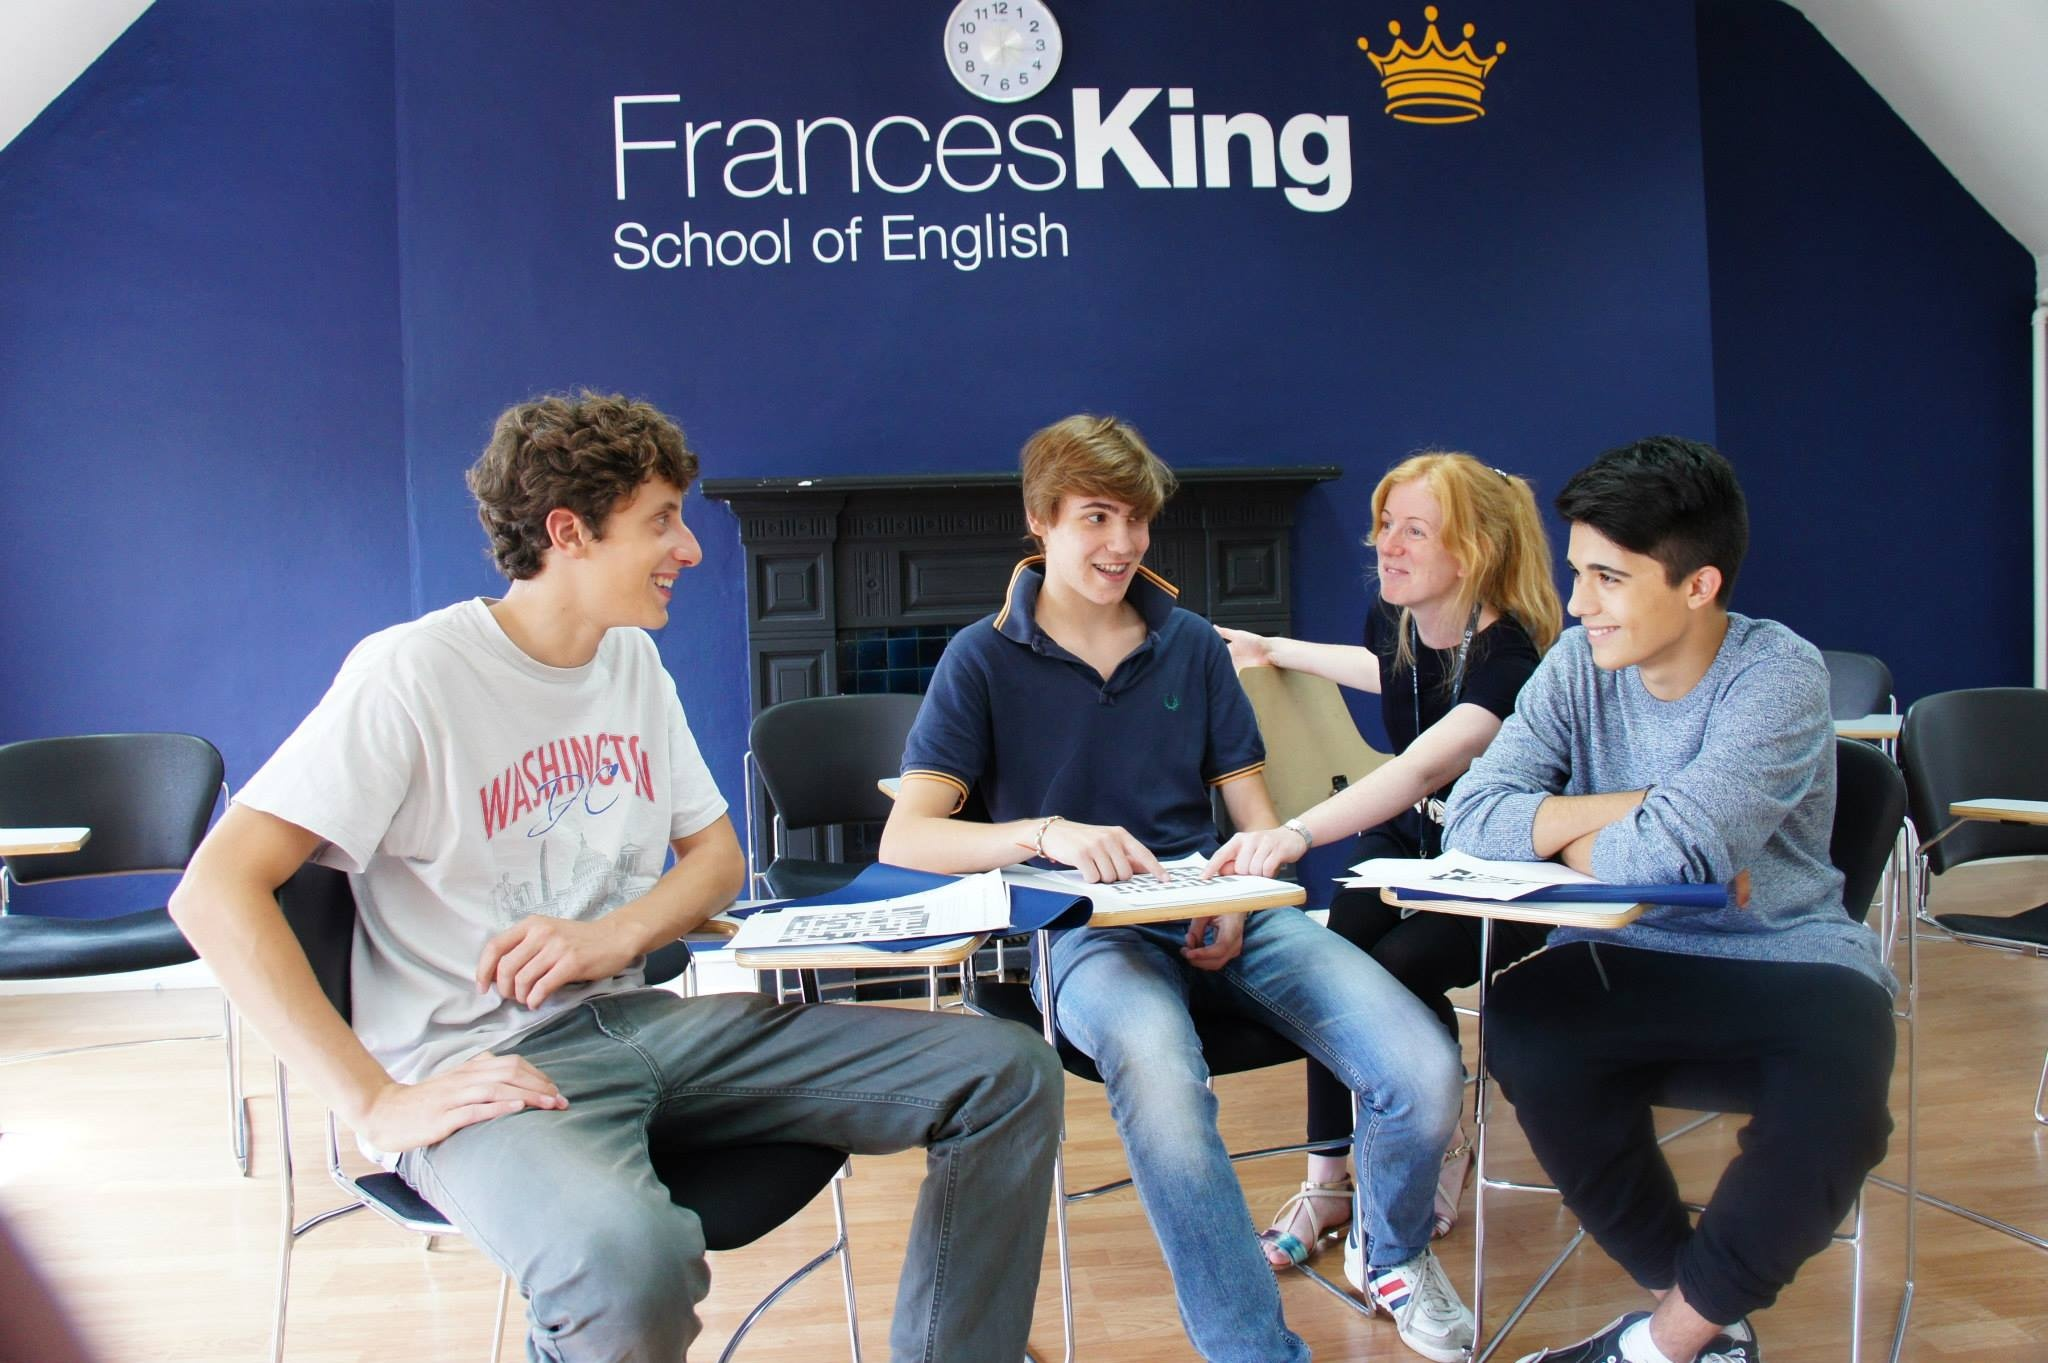 British Council LearnEnglish Free resources to learn